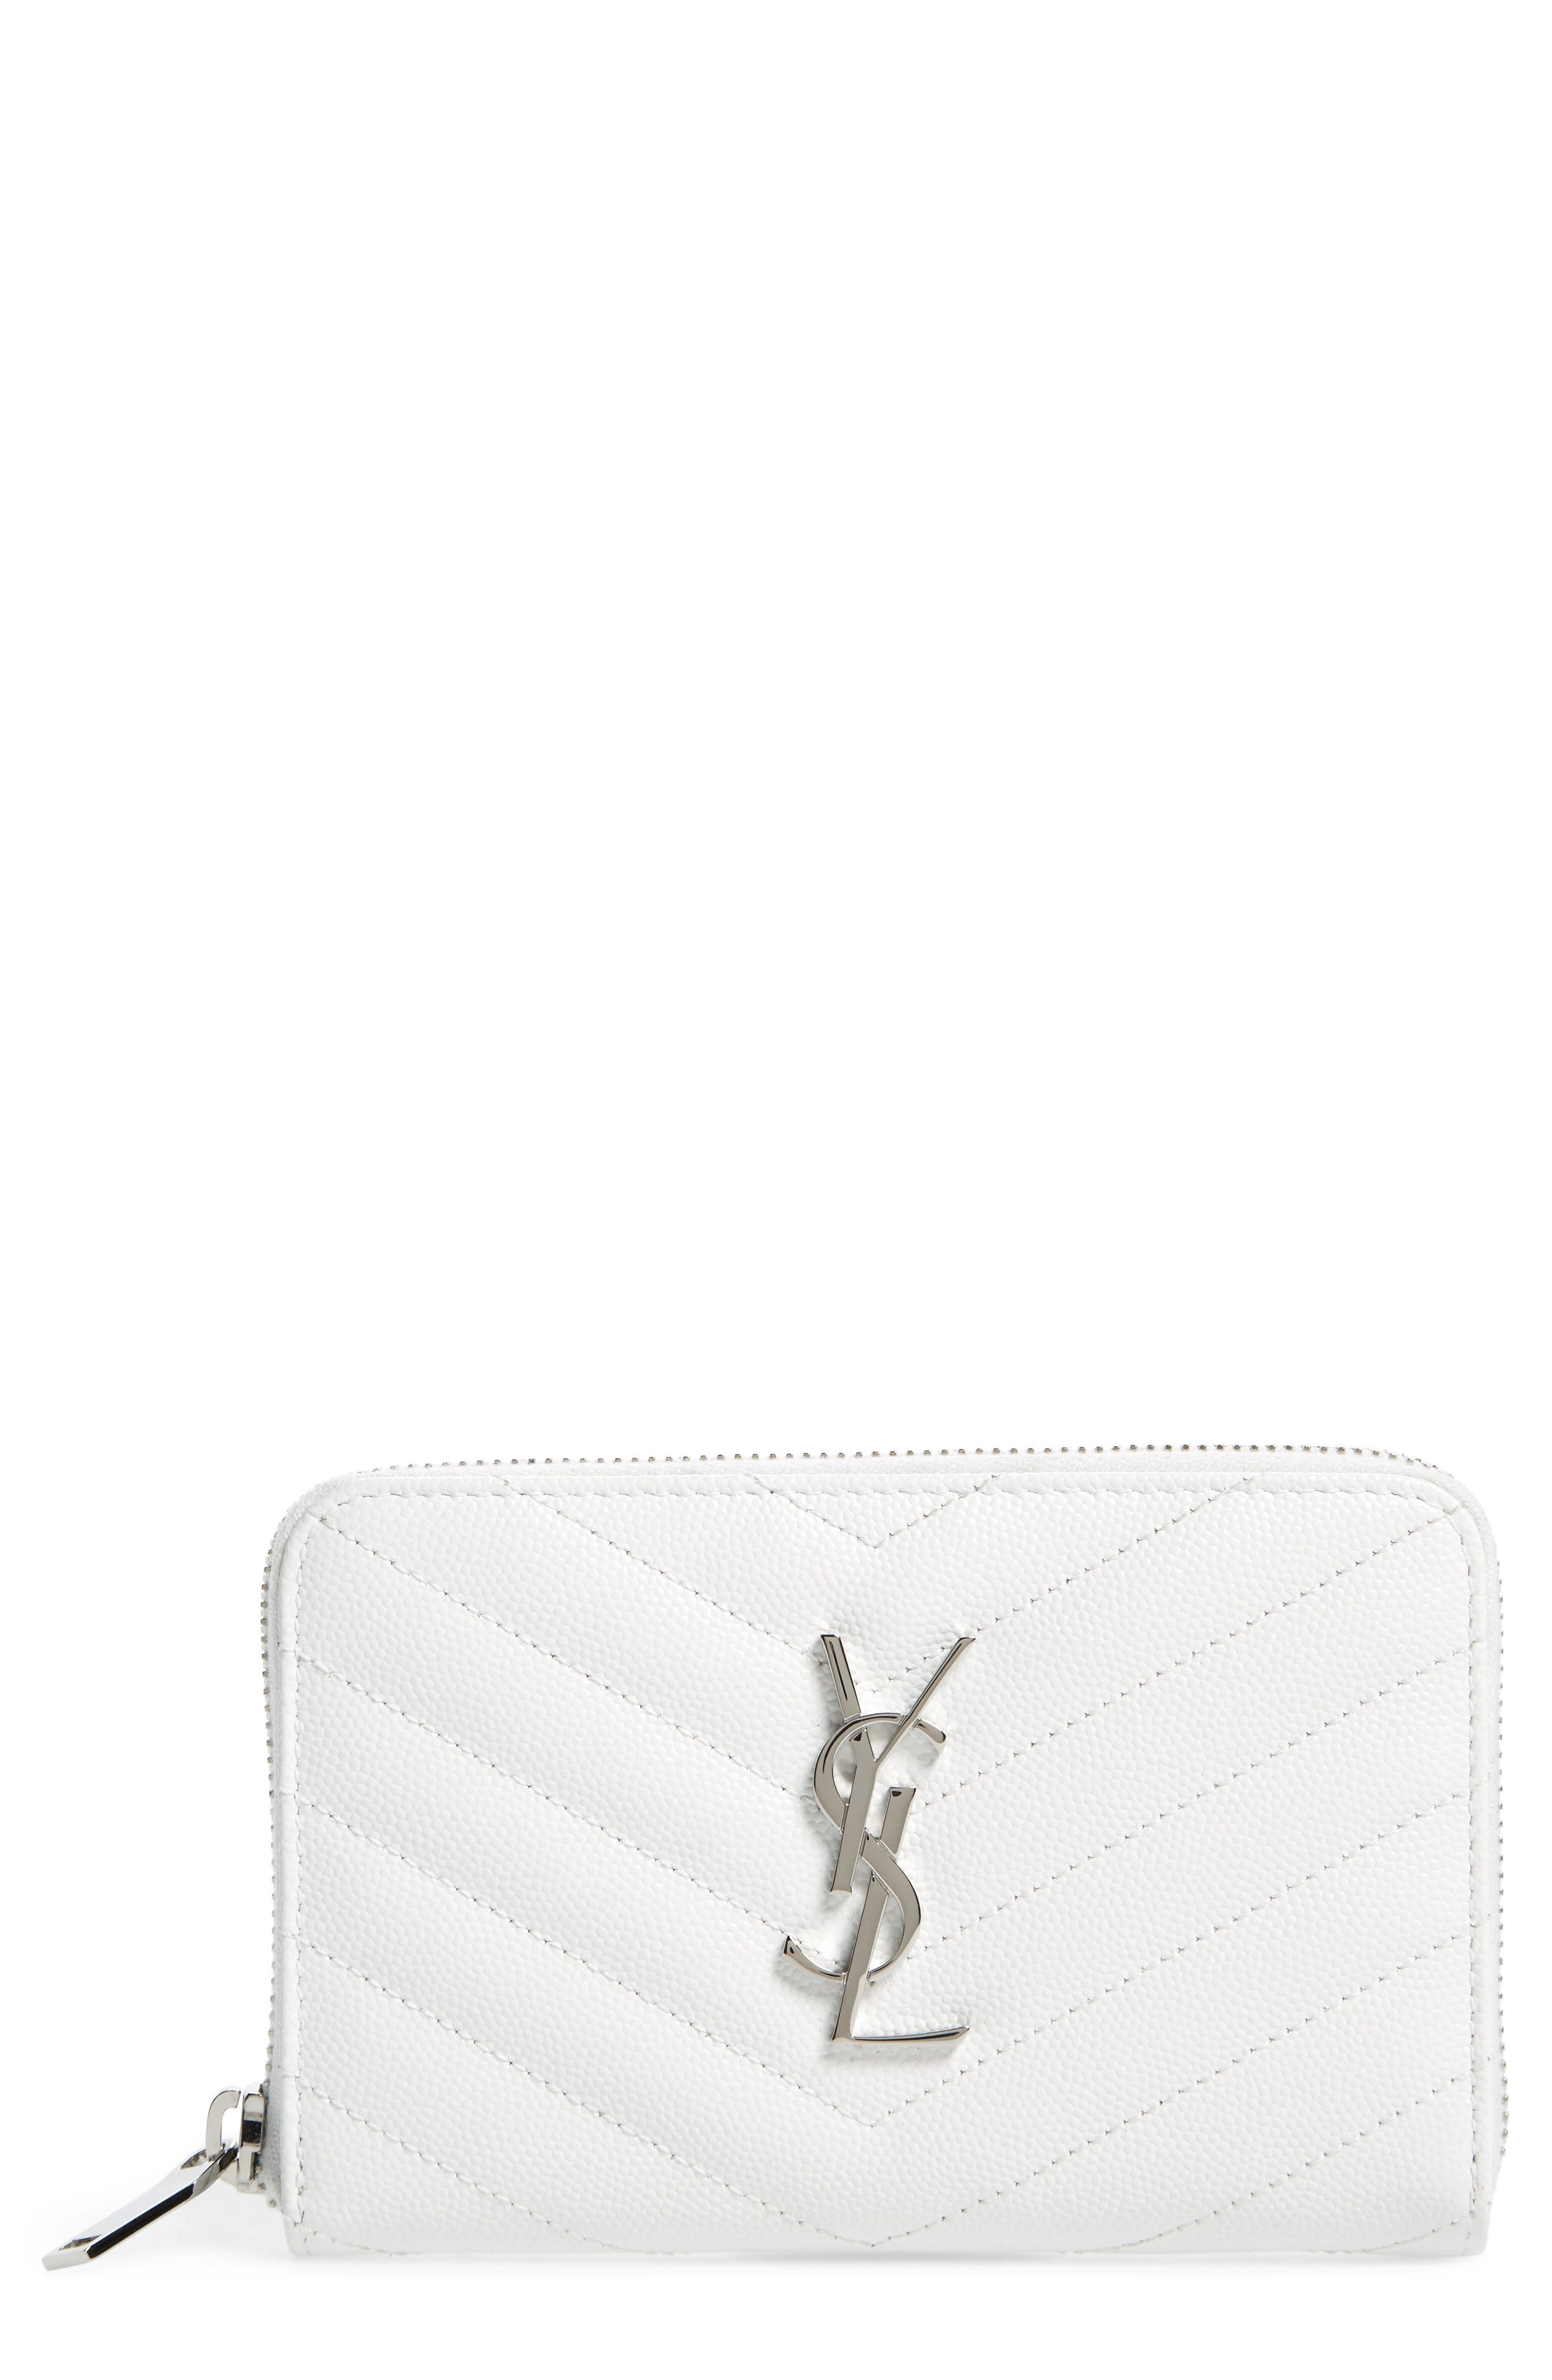 Small Grained Leather Zip Around Wallet,                             Main thumbnail 1, color,                             Optic White